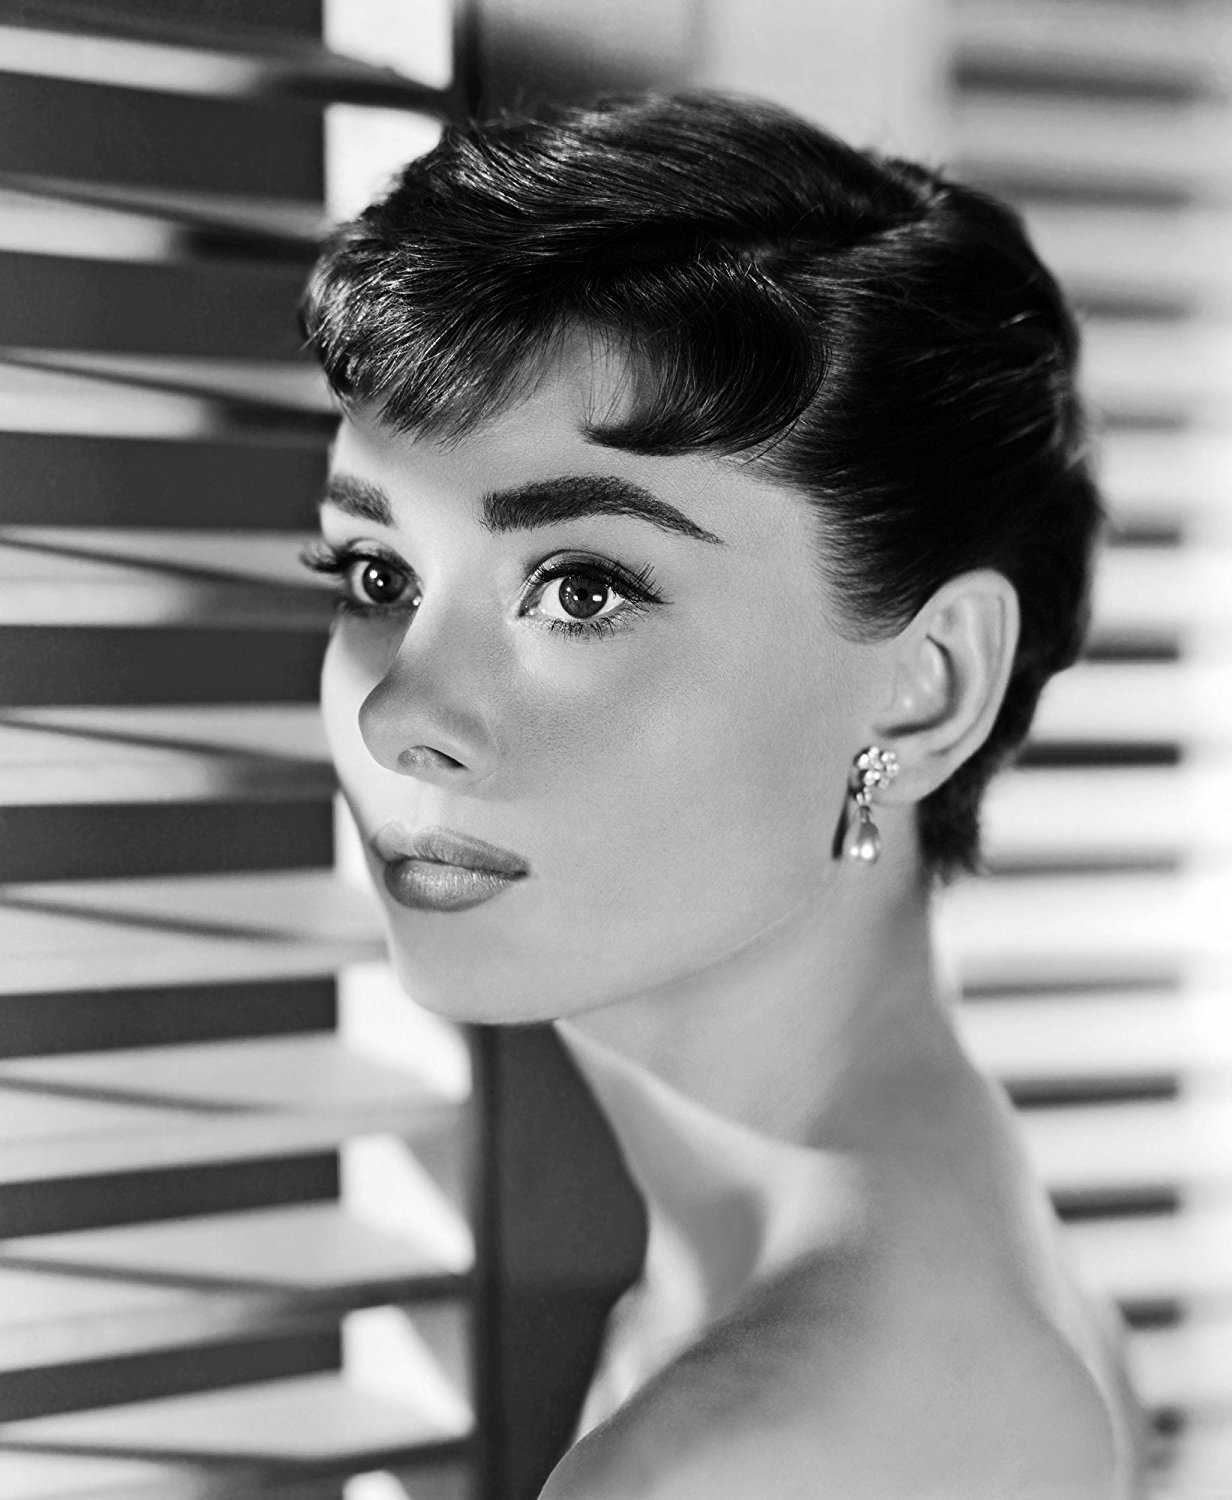 BEST Audrey Hepburn Poster - Blinds Window